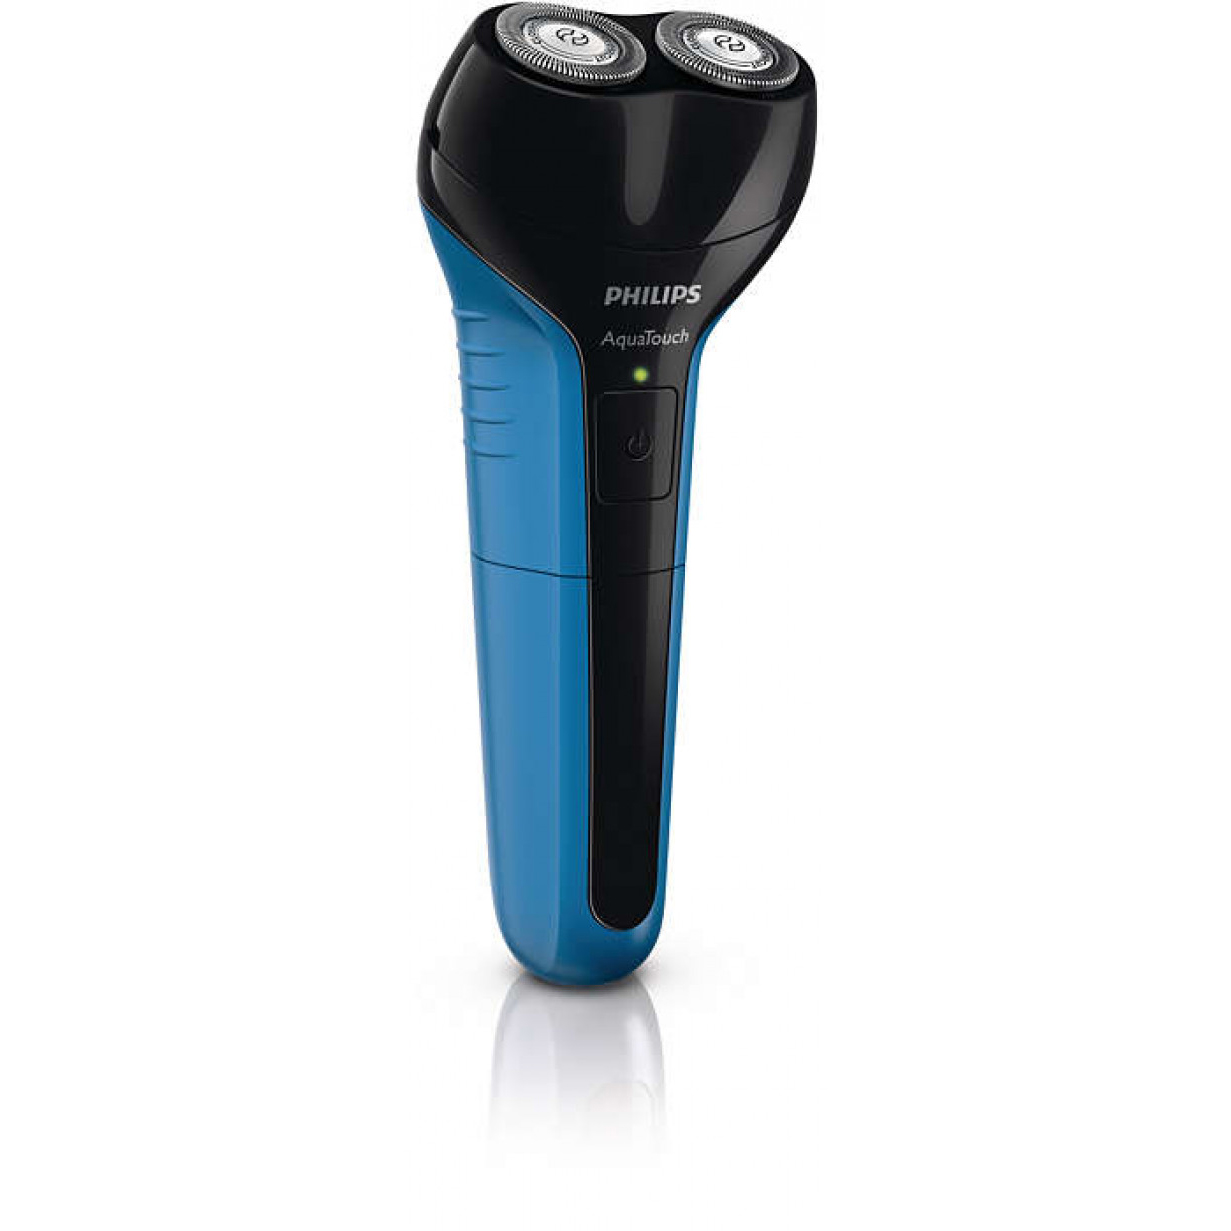 Philips AquaTouch Electric Shaver Wet & Dry - AT600/15